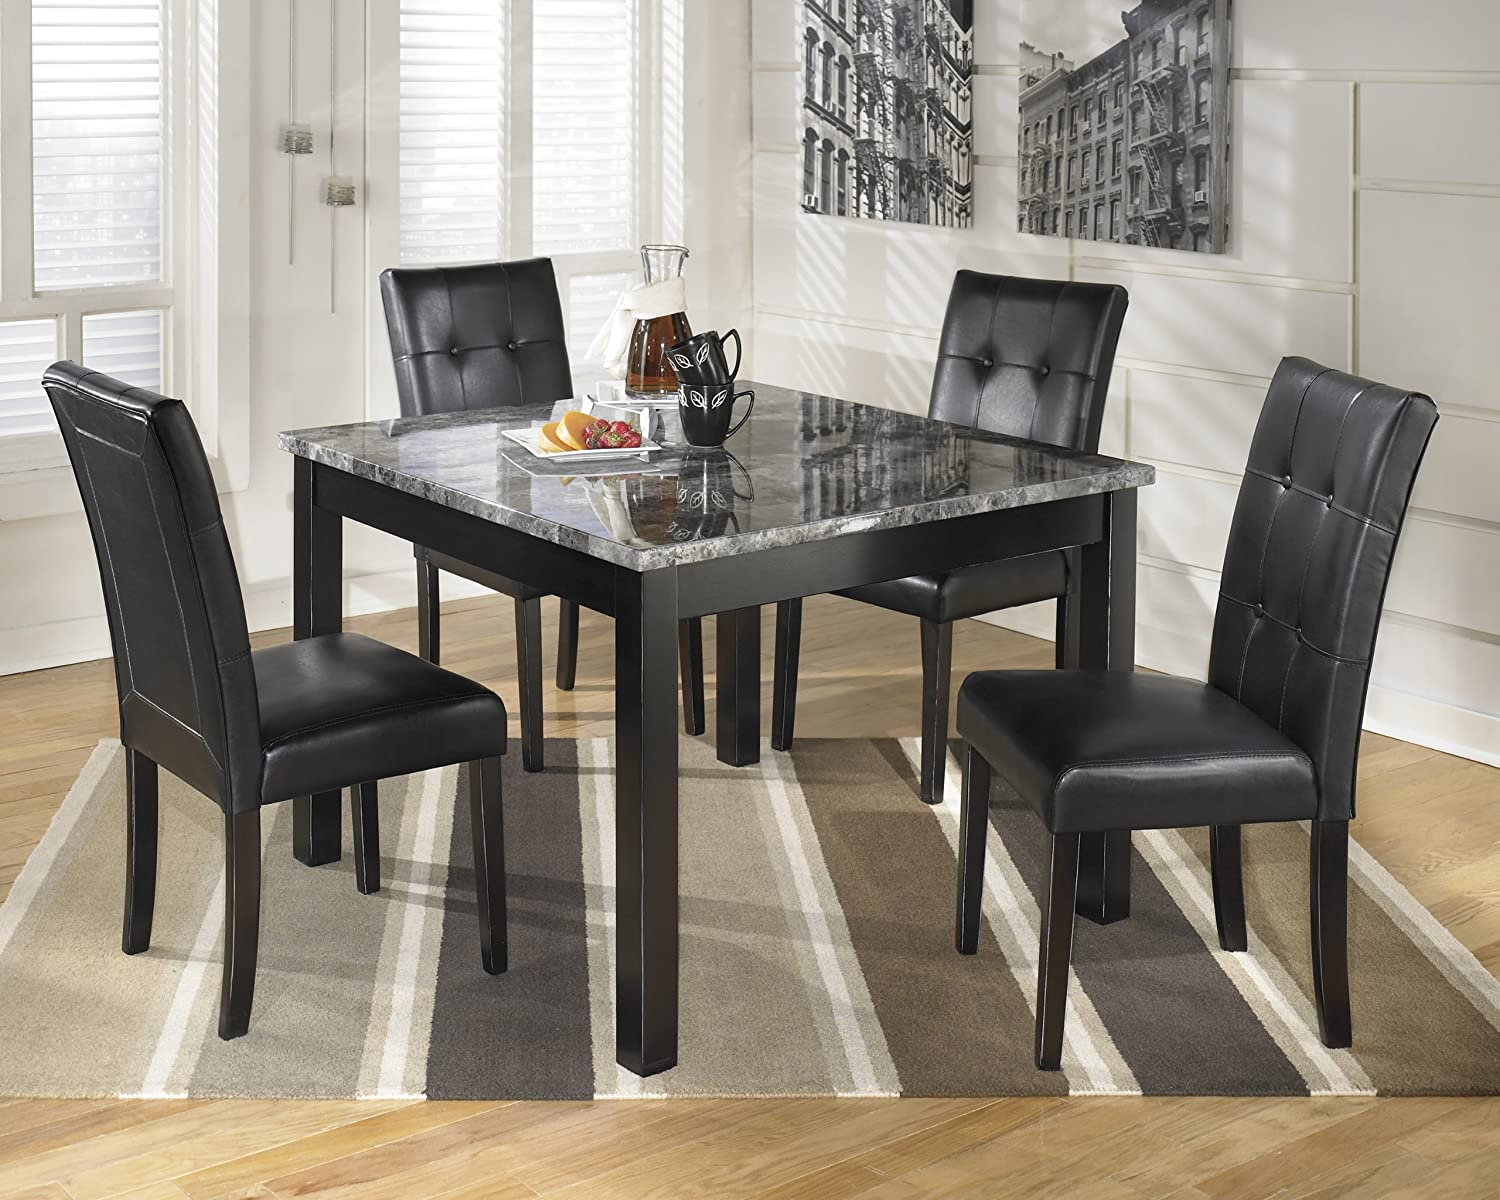 Square Table For 4 Part - 25: Amazon.com - Ashley D154-225 Maysville Black Square Dining Room Table Set -  Table U0026 Chair Sets